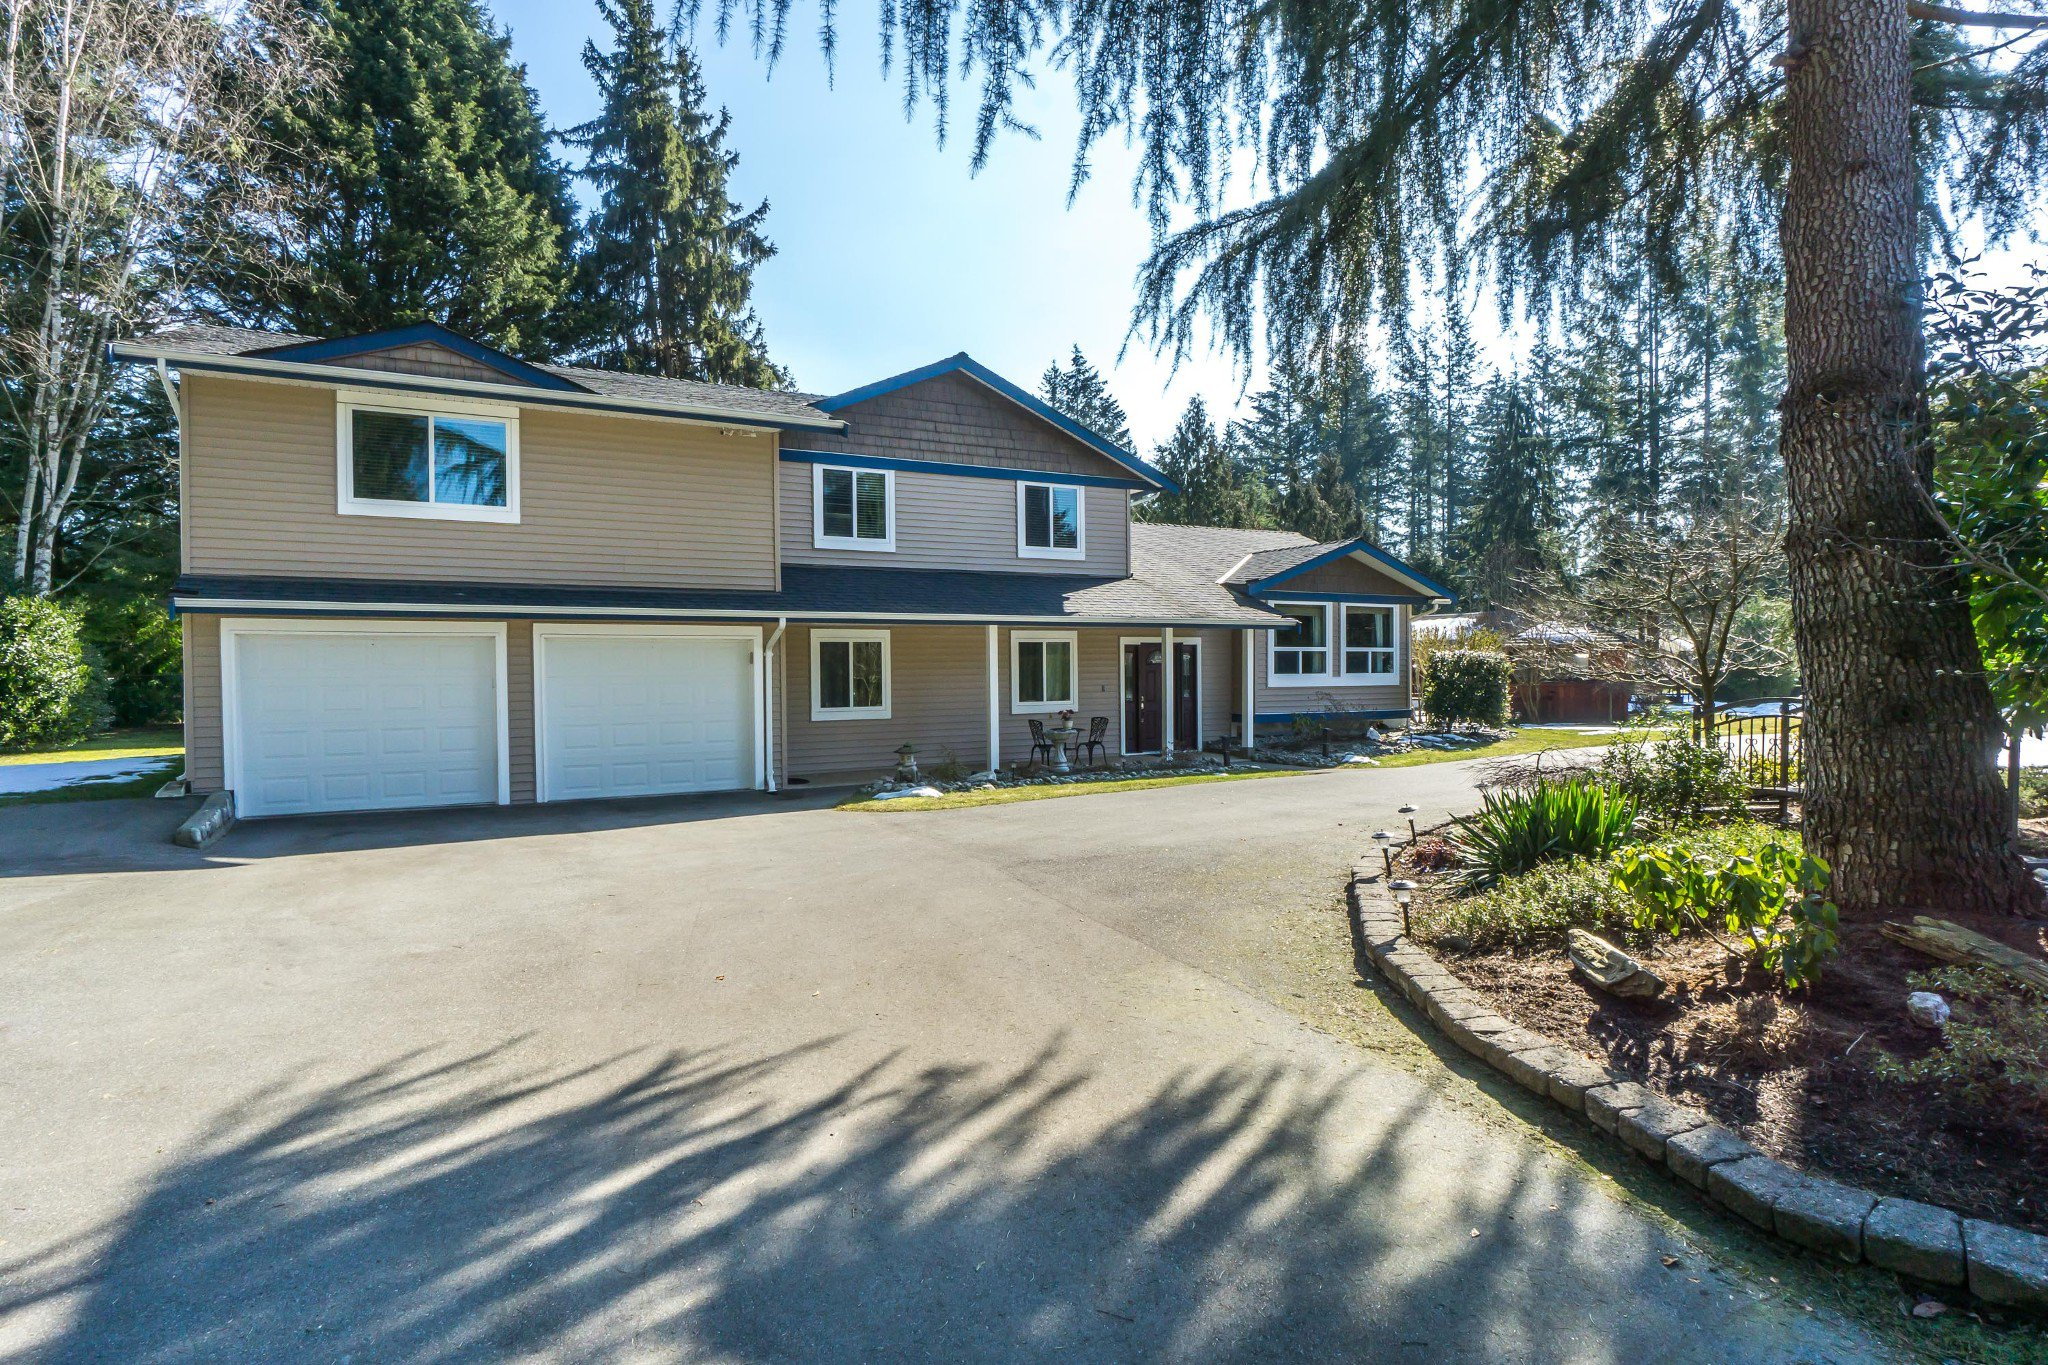 Main Photo: 4860 239 Street in Langley: Salmon River House for sale : MLS®# R2384918